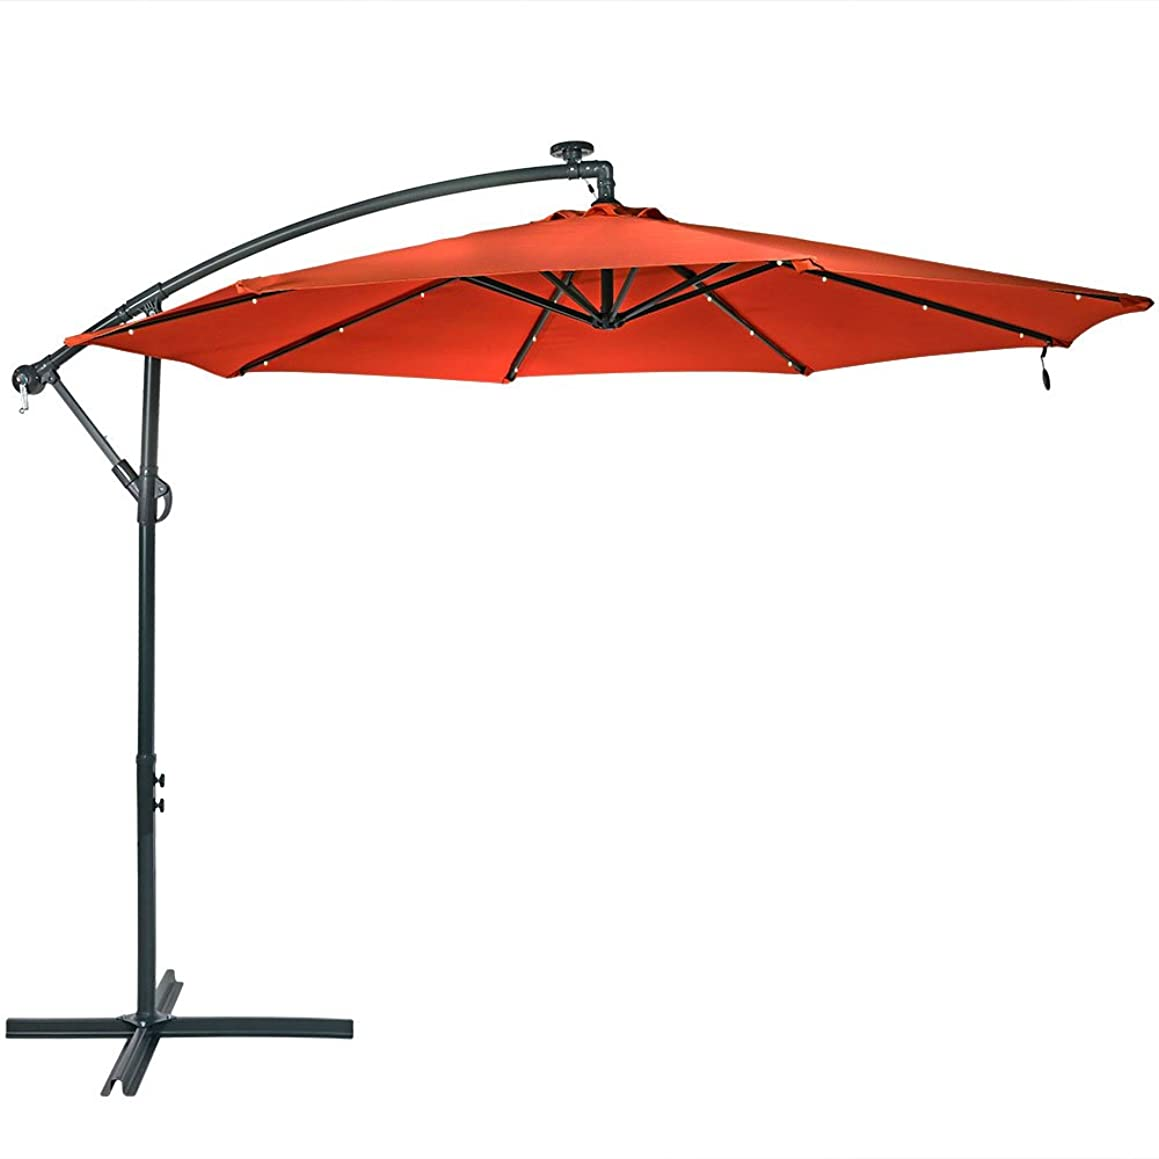 Sunnydaze 10-Foot Offset Cantilever Solar Patio Umbrella with Outdoor LED Lights, Crank, and Cross Base, Burnt Orange